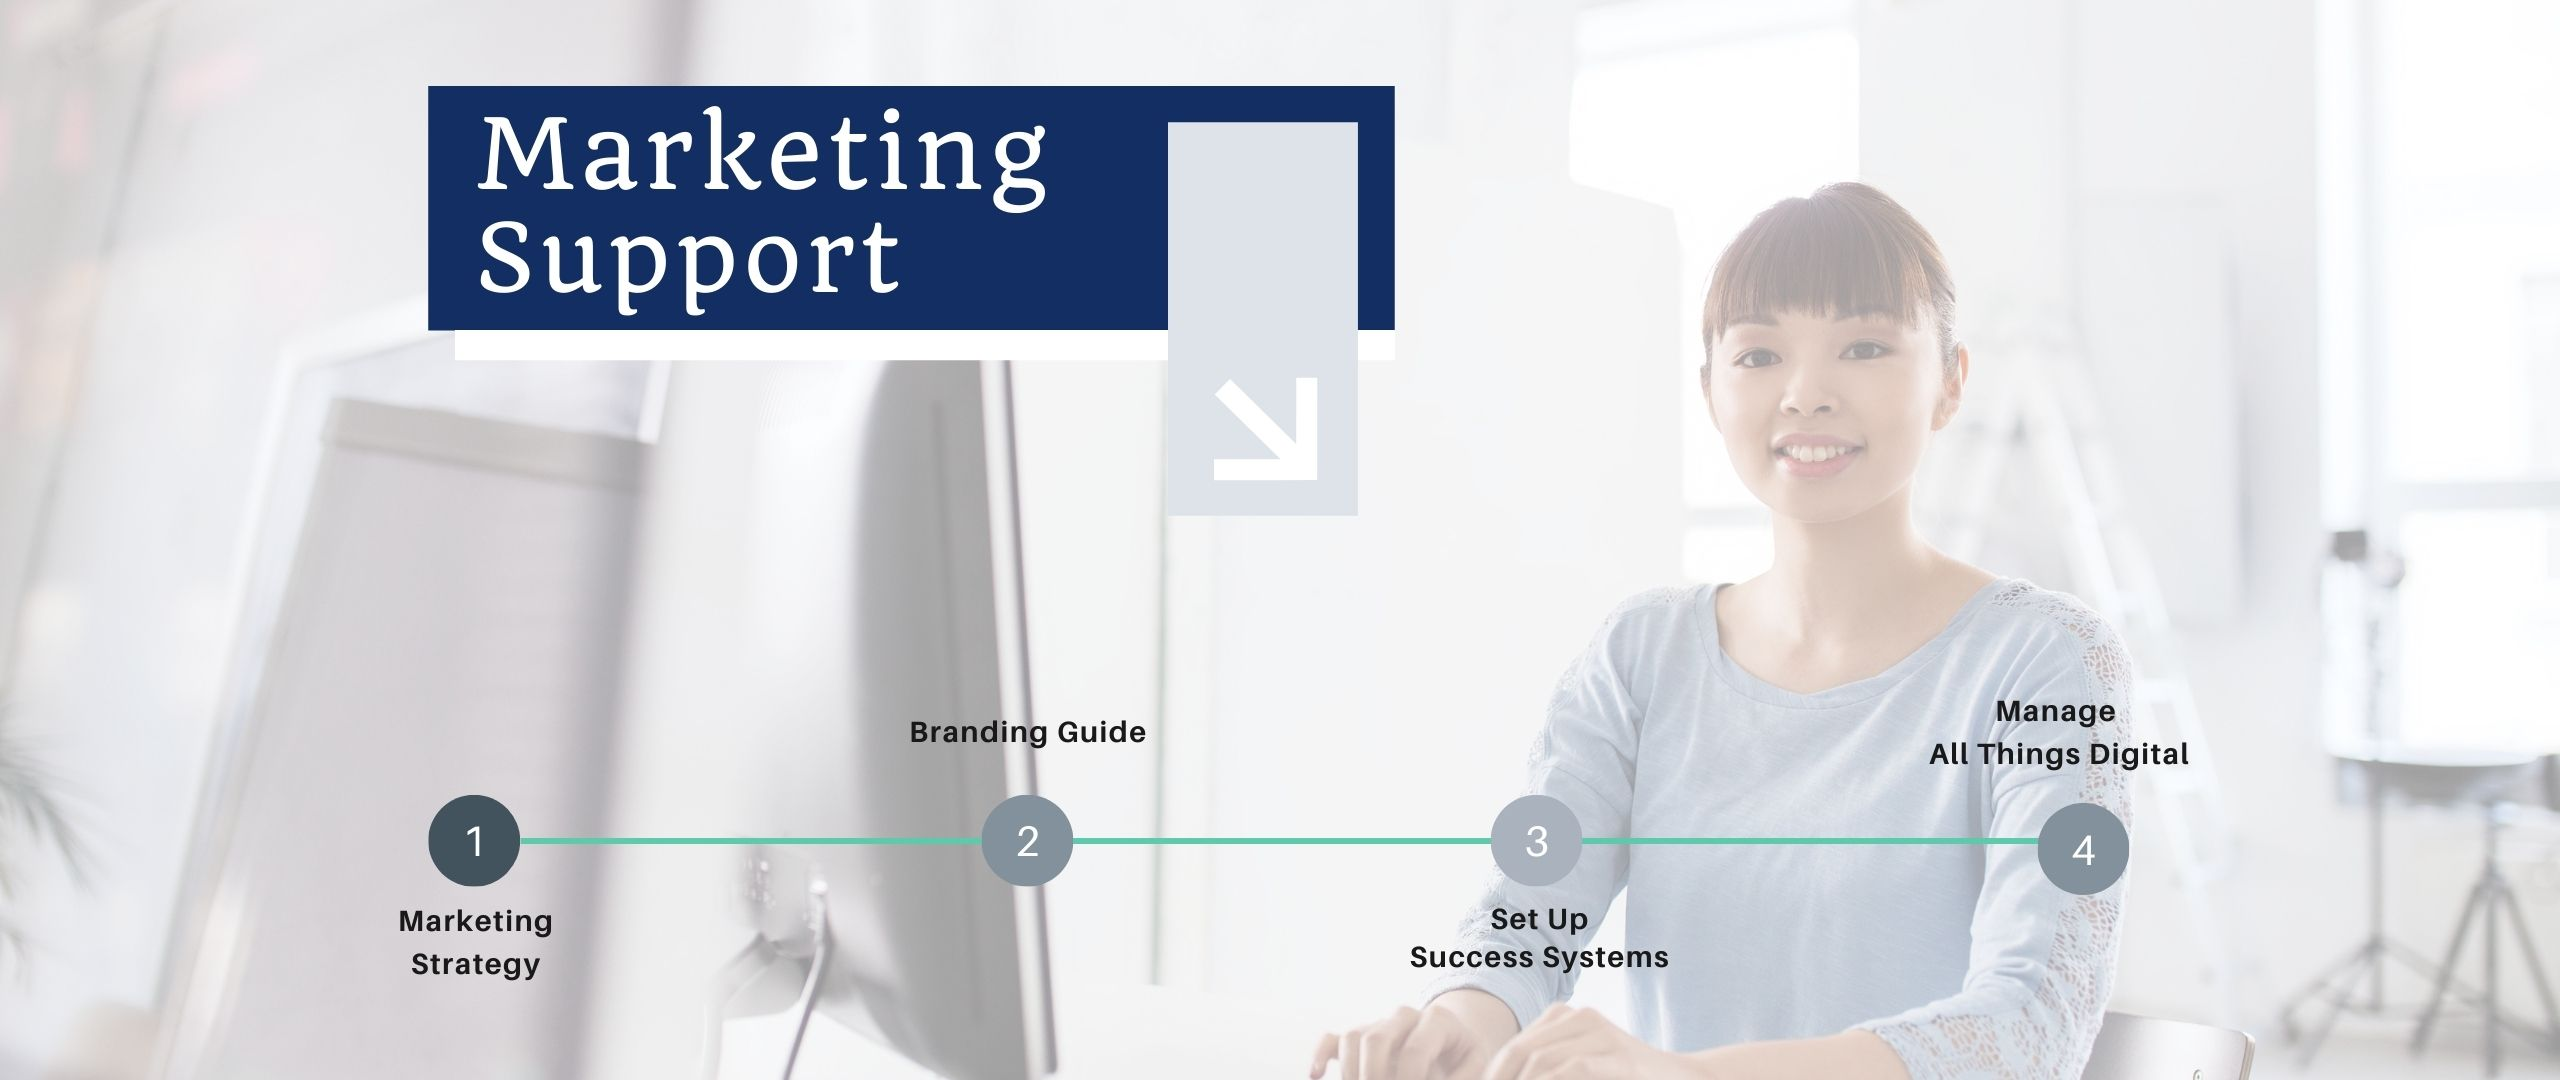 larek point consulting marketing support